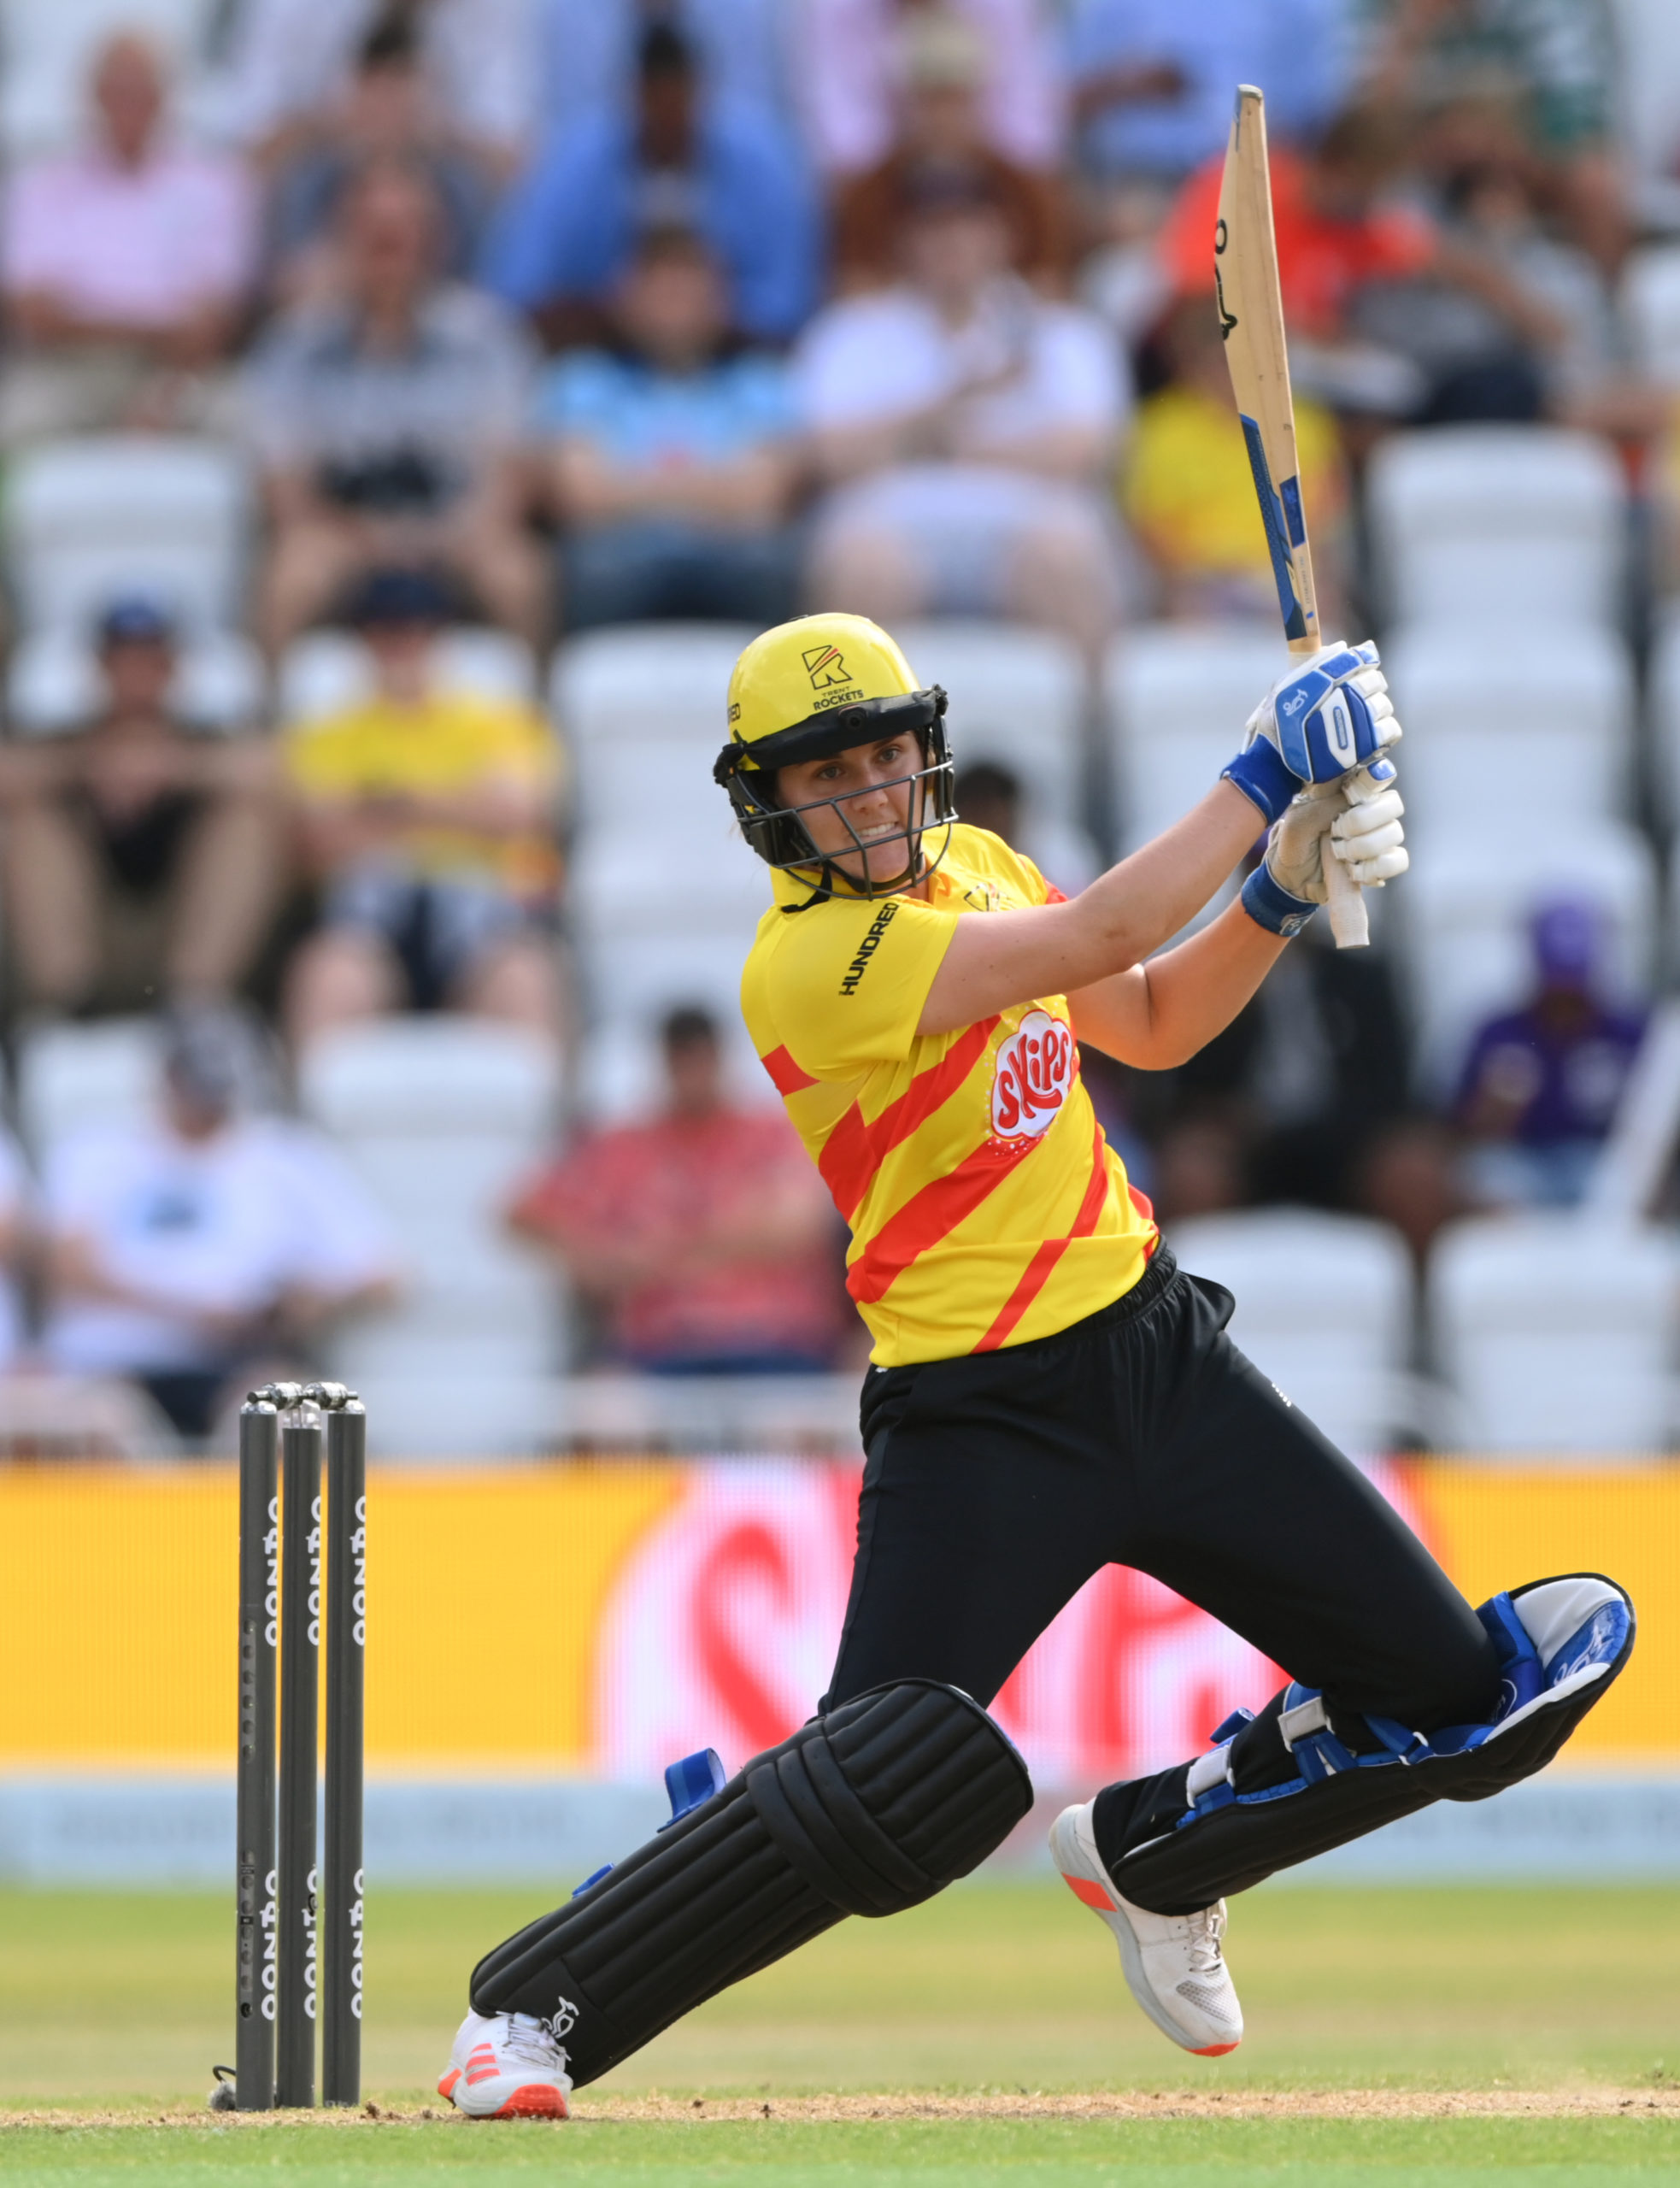 Nat Sciver Profile (Photo by Stu Forster/Getty Images).